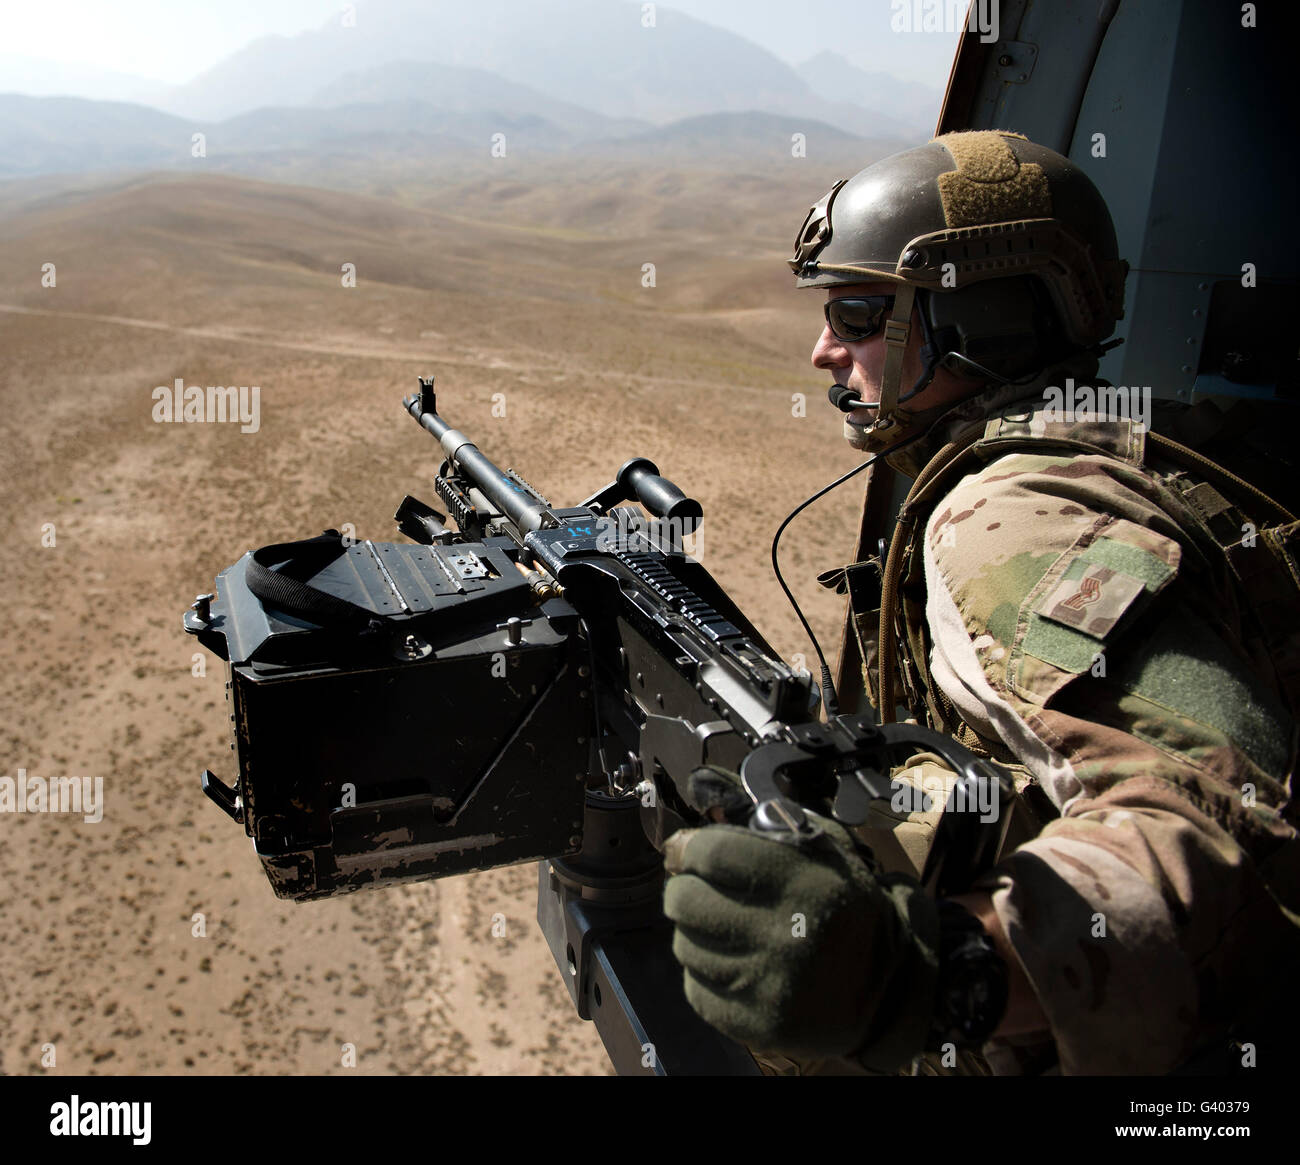 Door gunner scans the terrain over Afghanistan. - Stock Image